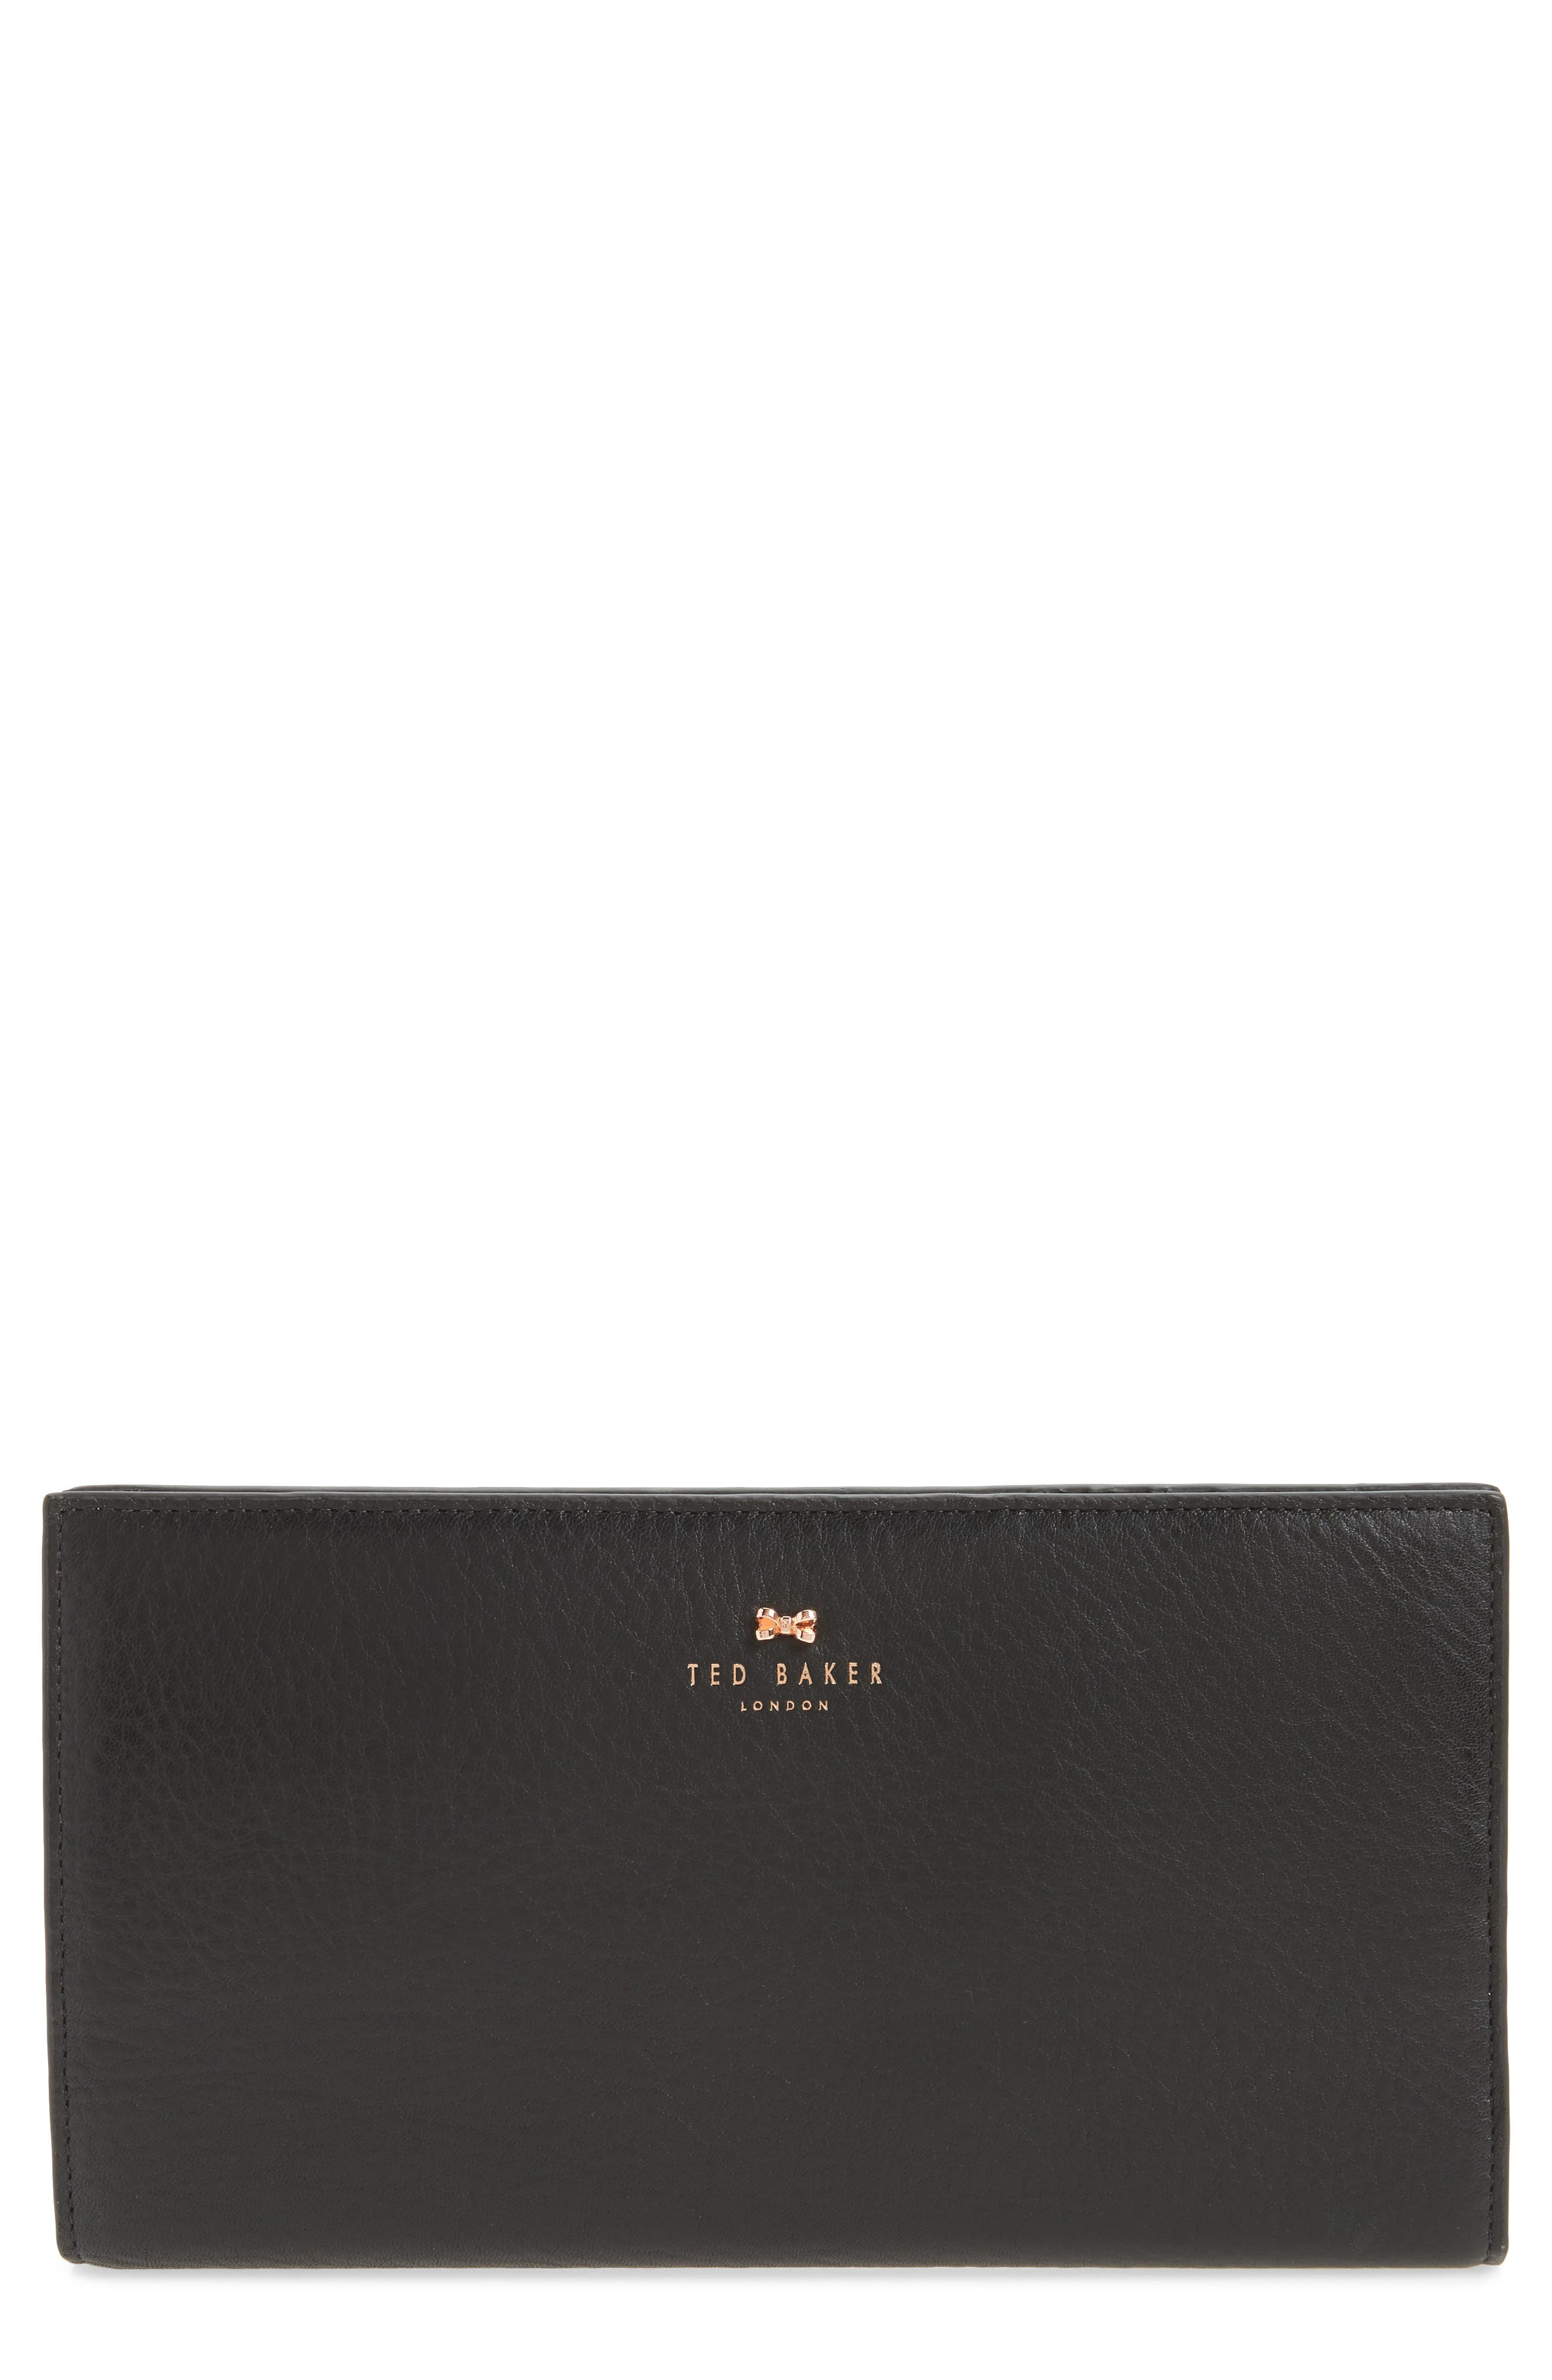 Alternate Image 1 Selected - Ted Baker London Dolle Leather Travel Wallet